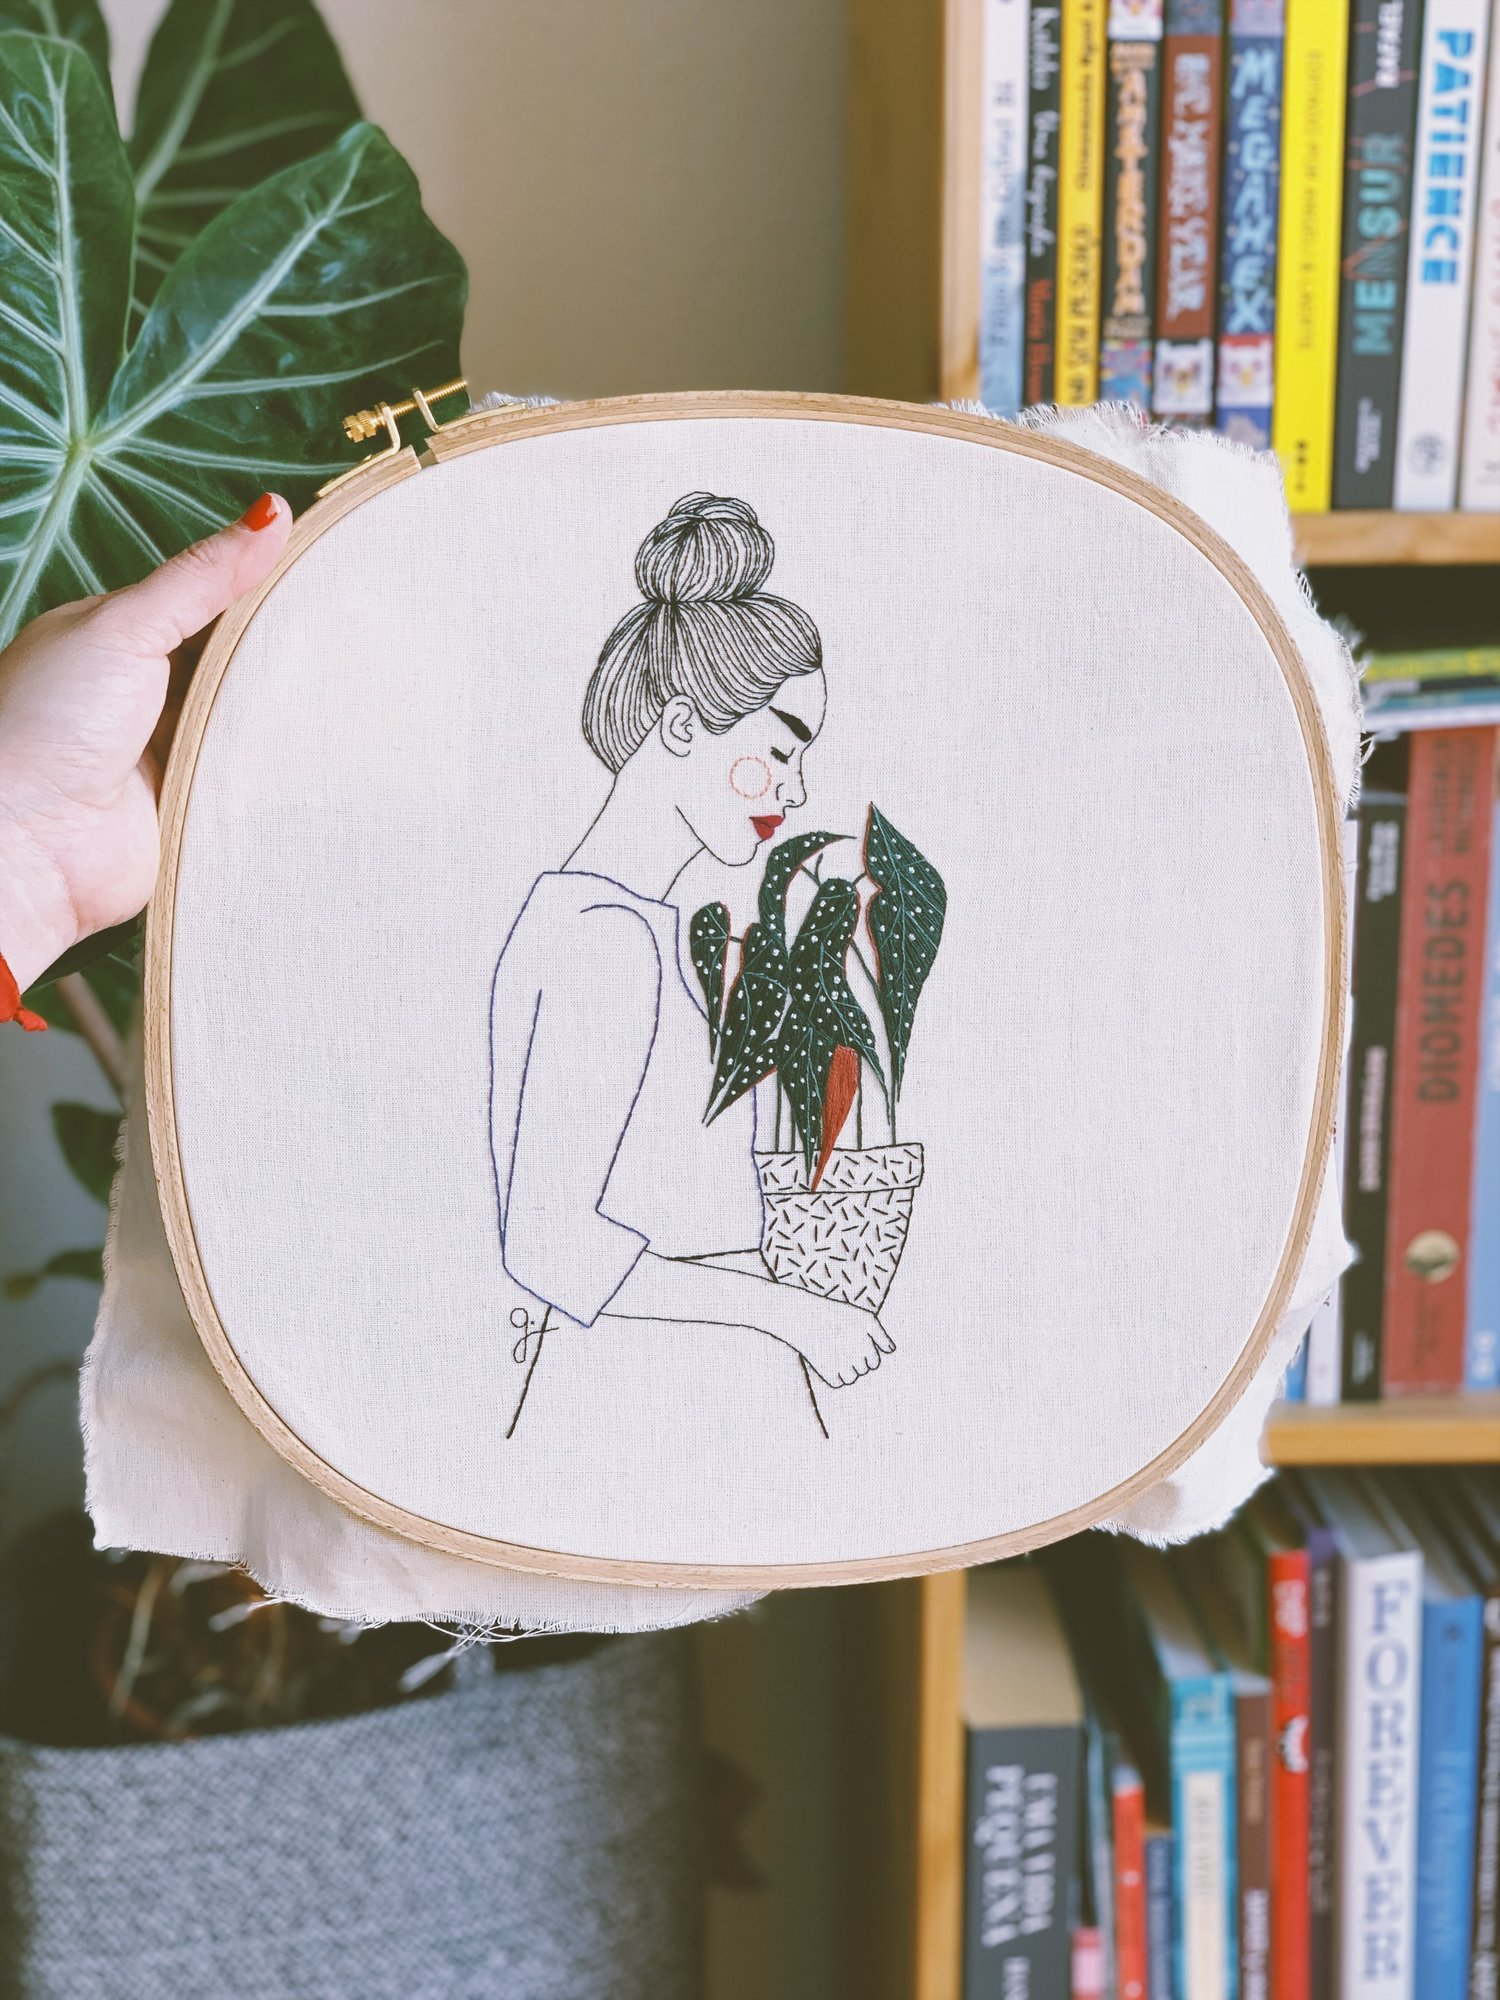 Embroidered Women Adorned With Flower-Shaped Tattoos and Leaf-Covered Clothing by Giselle Quinto | Colossal